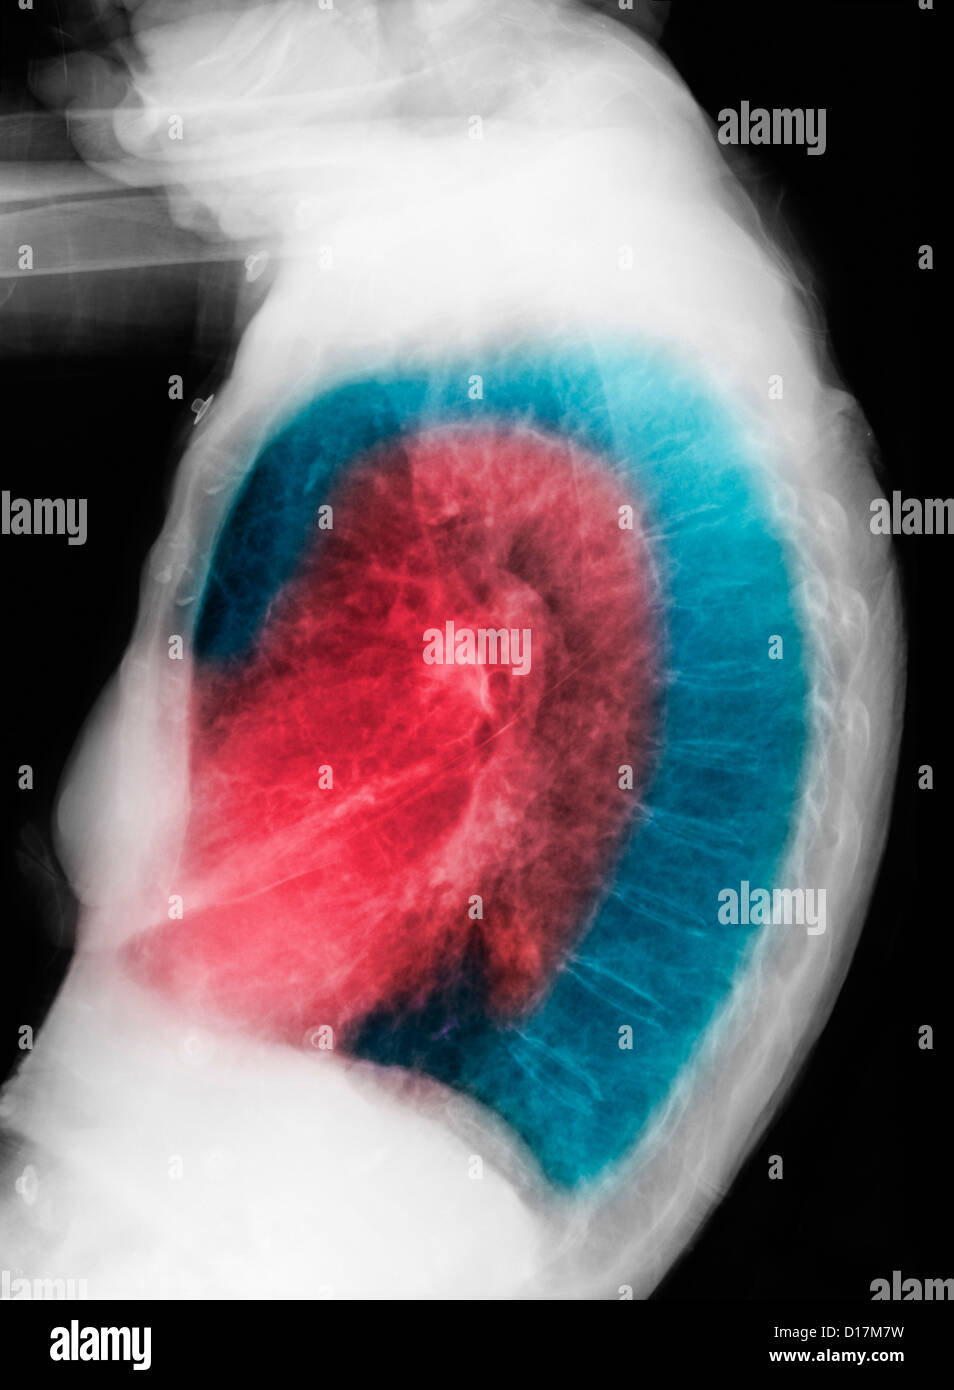 CXR of elderly woman smoker with COPD - Stock Image